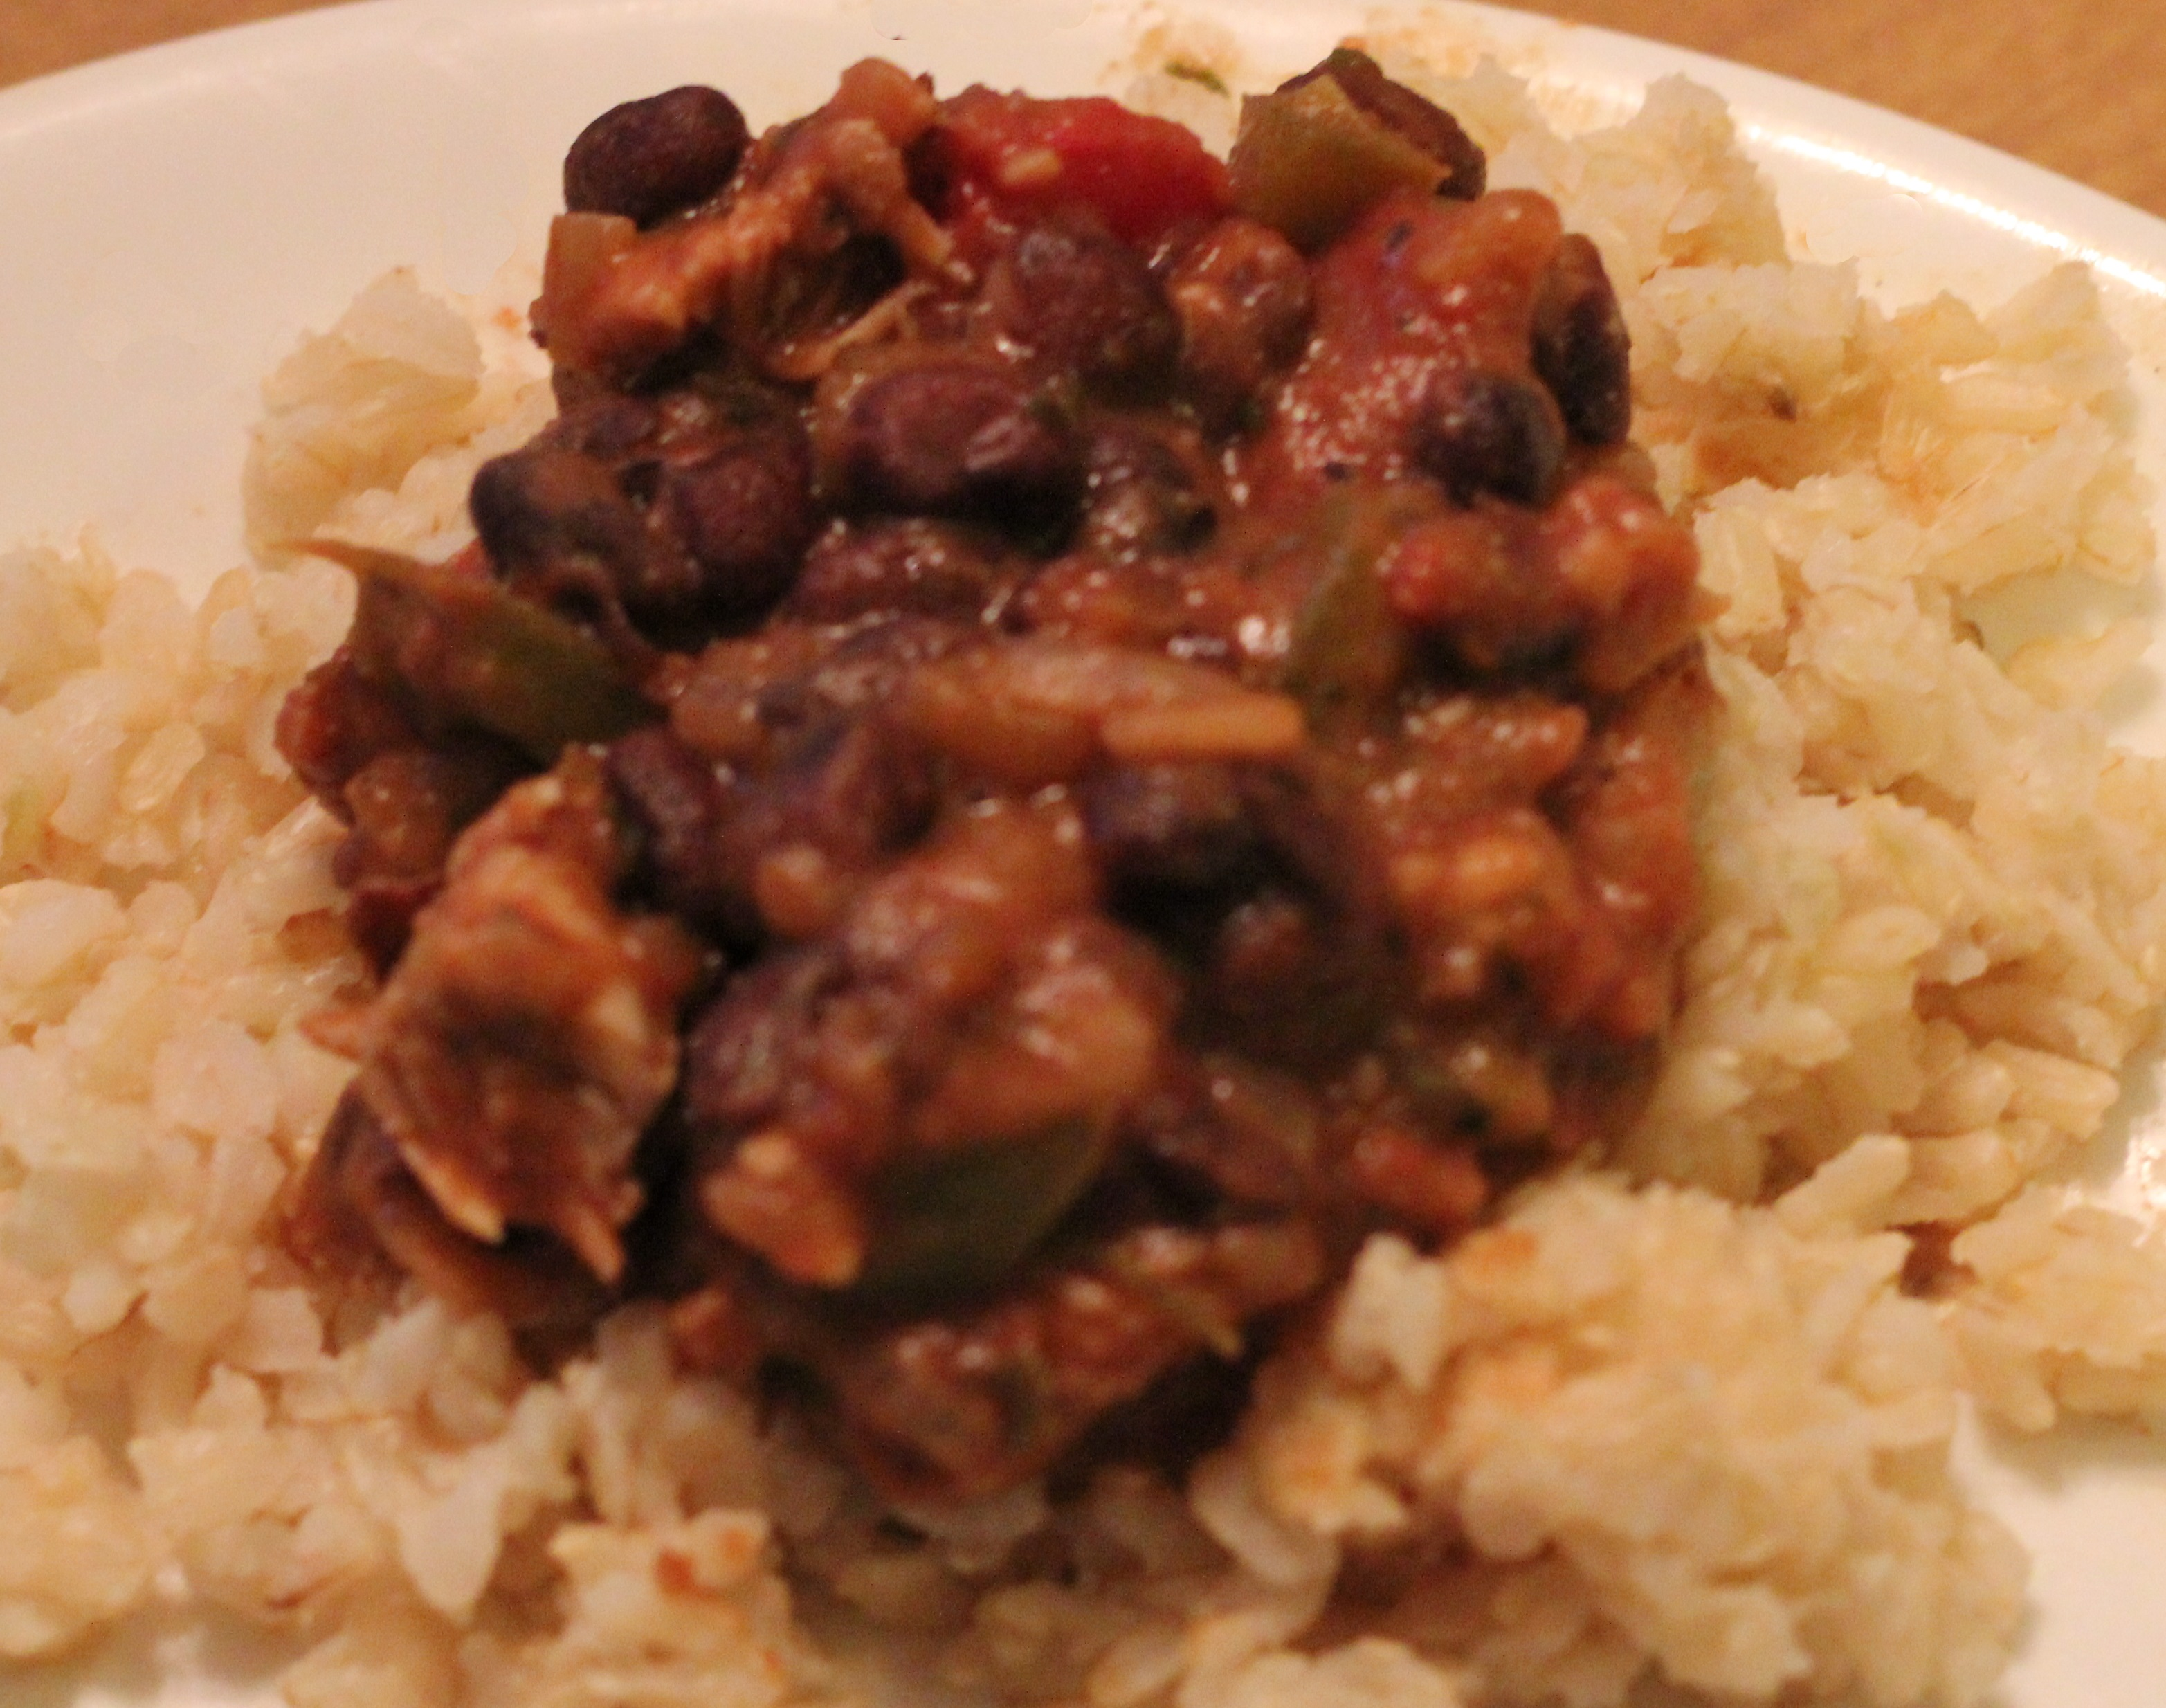 Brazilian style rice black beans recipe easy yummy latterday easy brazilian food this is my version of feijoada a popular brazilian dish i decided to try it out last night and it turned out really good forumfinder Gallery